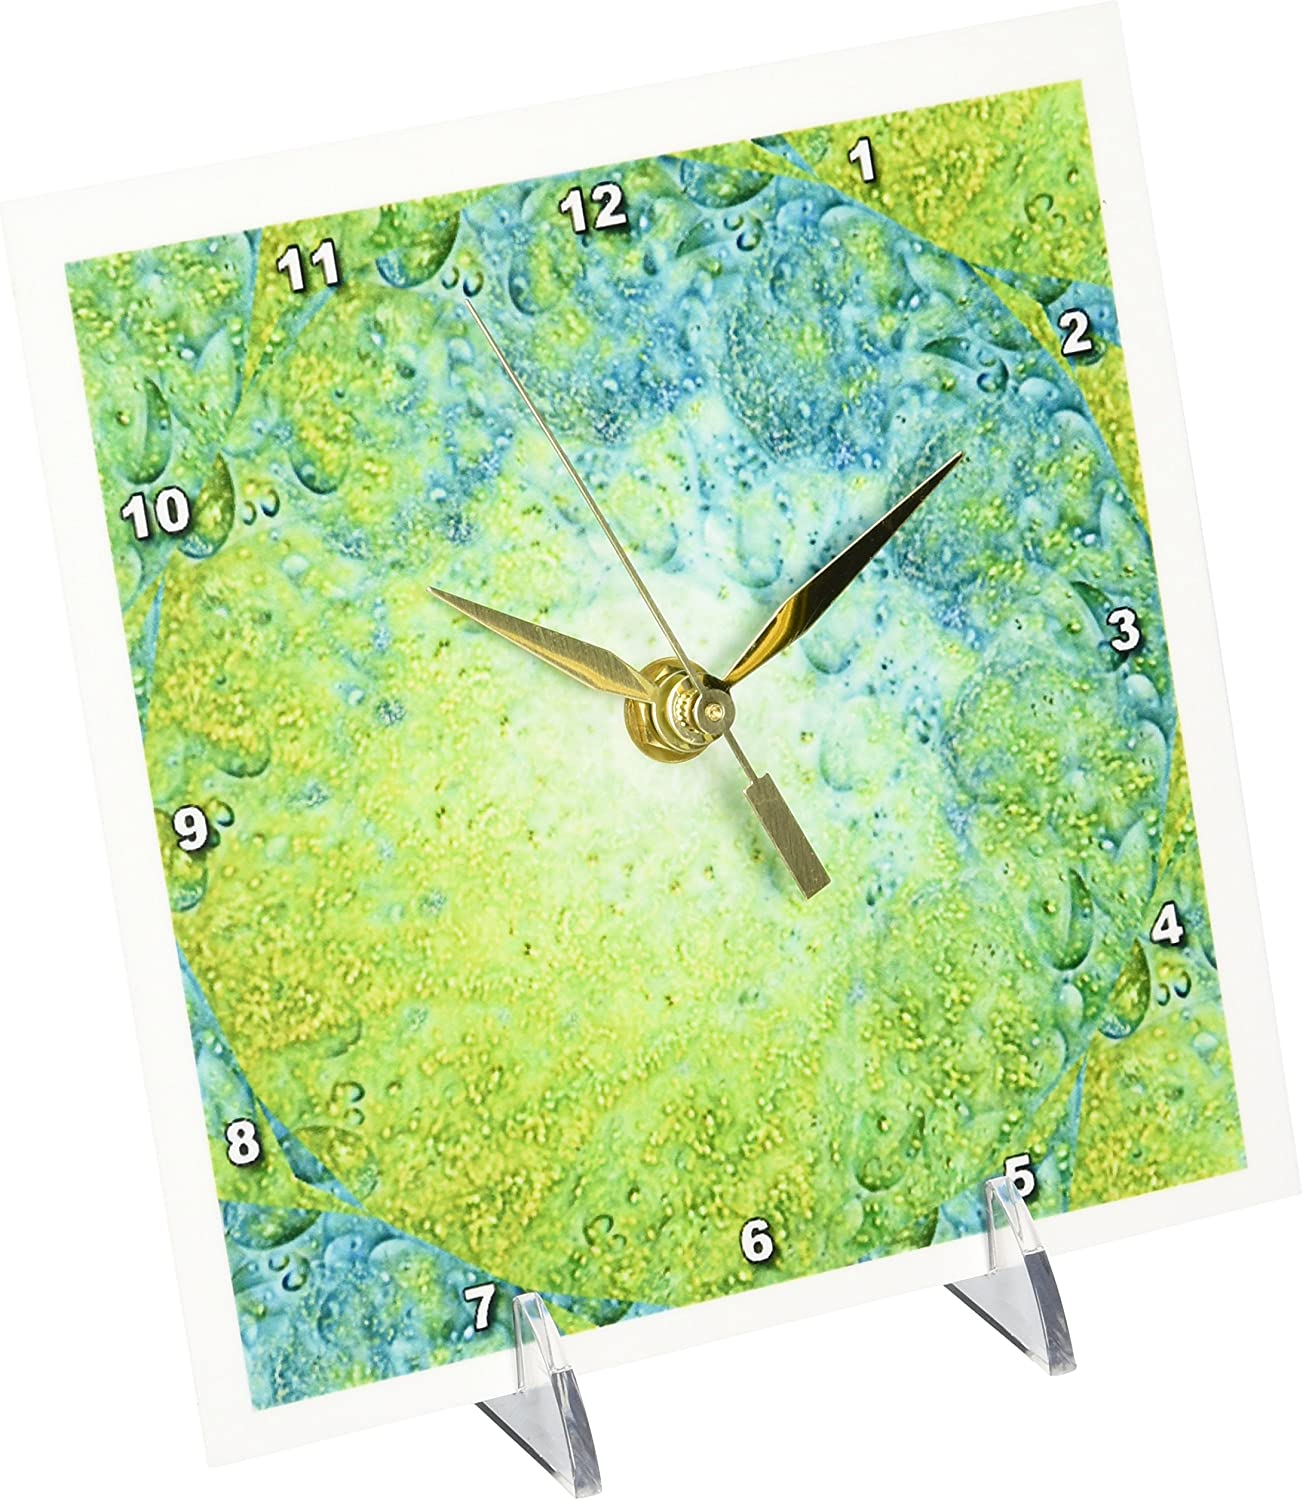 Popular brand in Animer and price revision the world 3dRose dc_8445_1 Desk Clock Oil 6 Abstract by 6-Inch